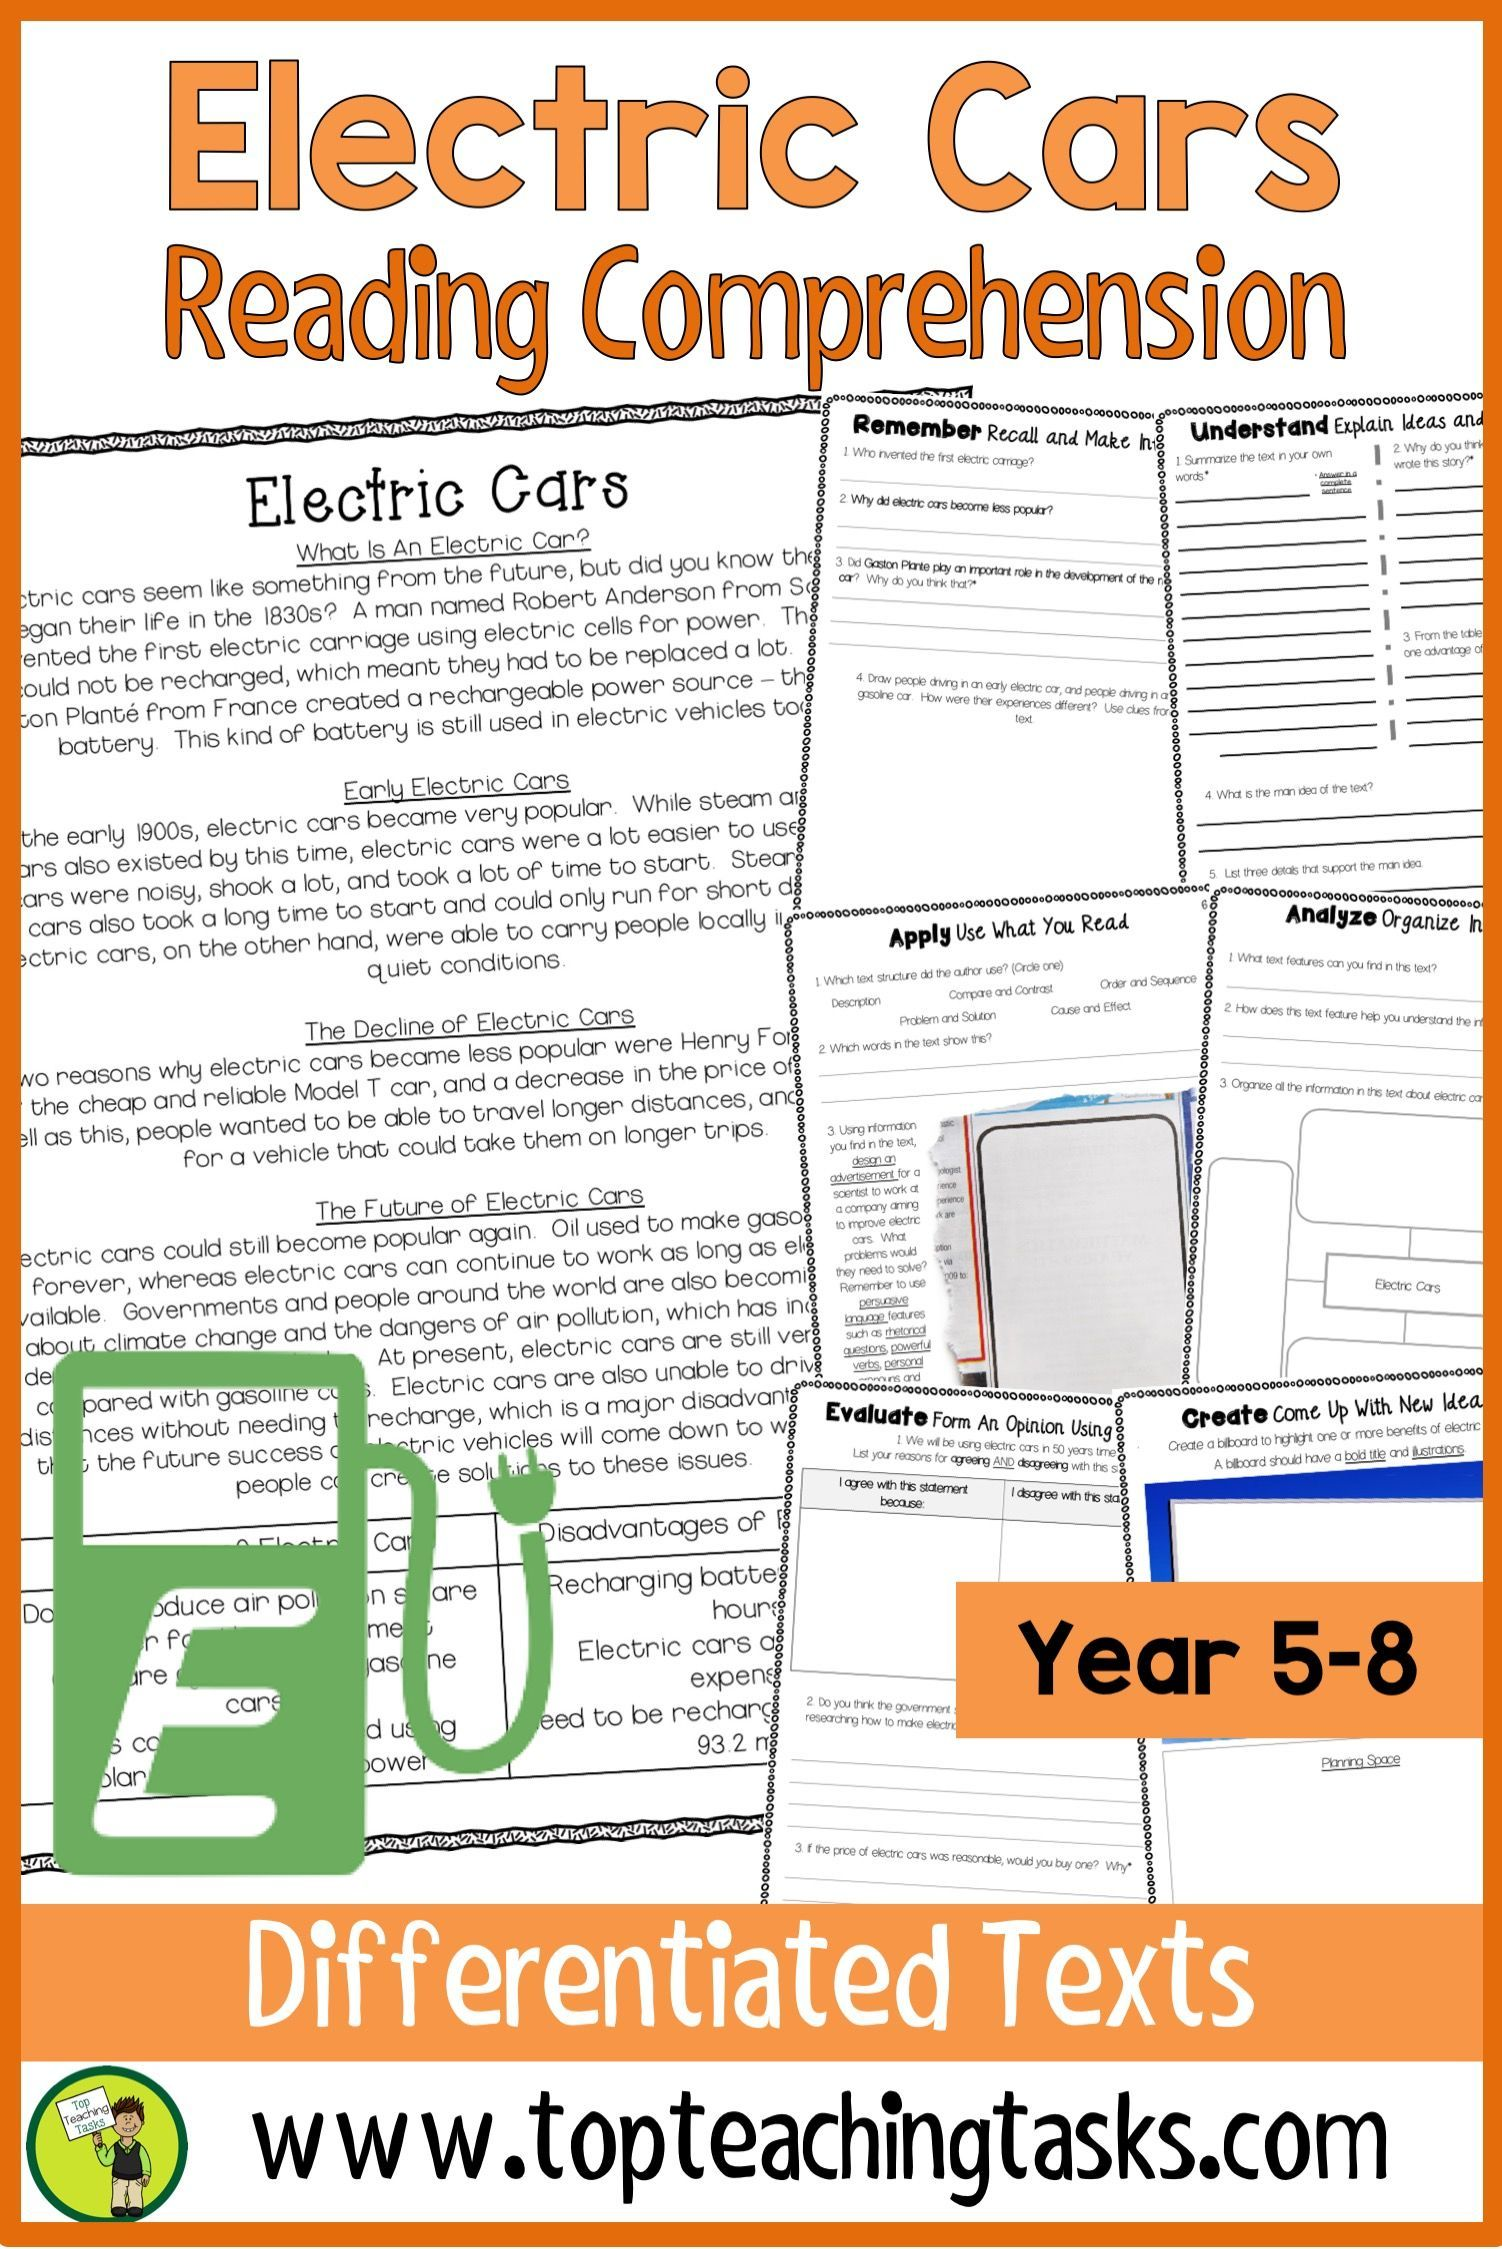 Electric Cars Reading Comprehension Passages And Questions Reading Comprehension Reading Comprehension Passages Comprehension Passage [ 2249 x 1502 Pixel ]